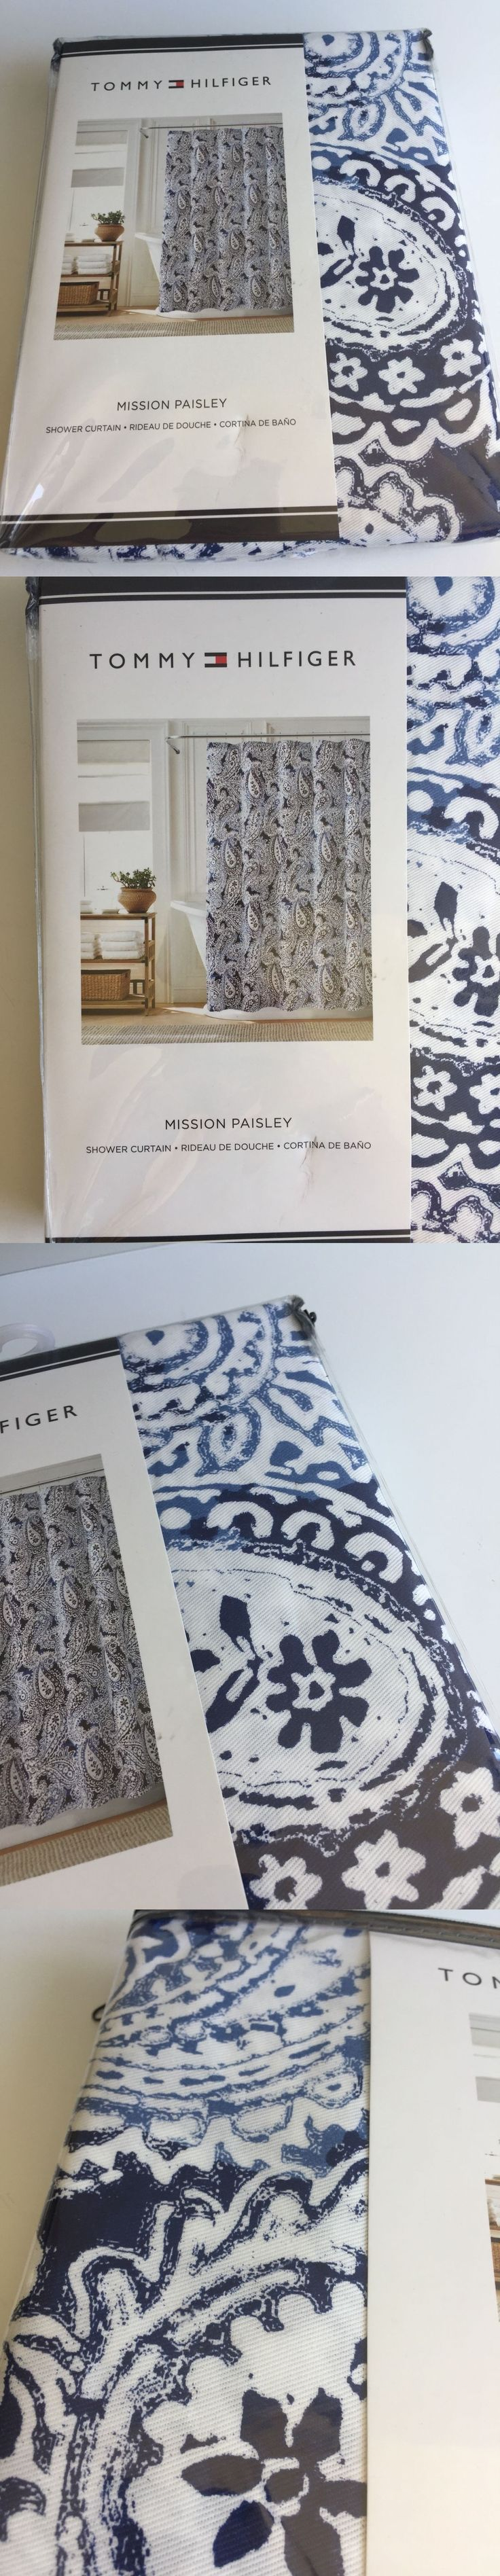 Christmas shower curtains on ebay - Shower Curtains 20441 New Tommy Hilfiger Canyon Paisley Fabric Shower Curtain 72x72 Navy